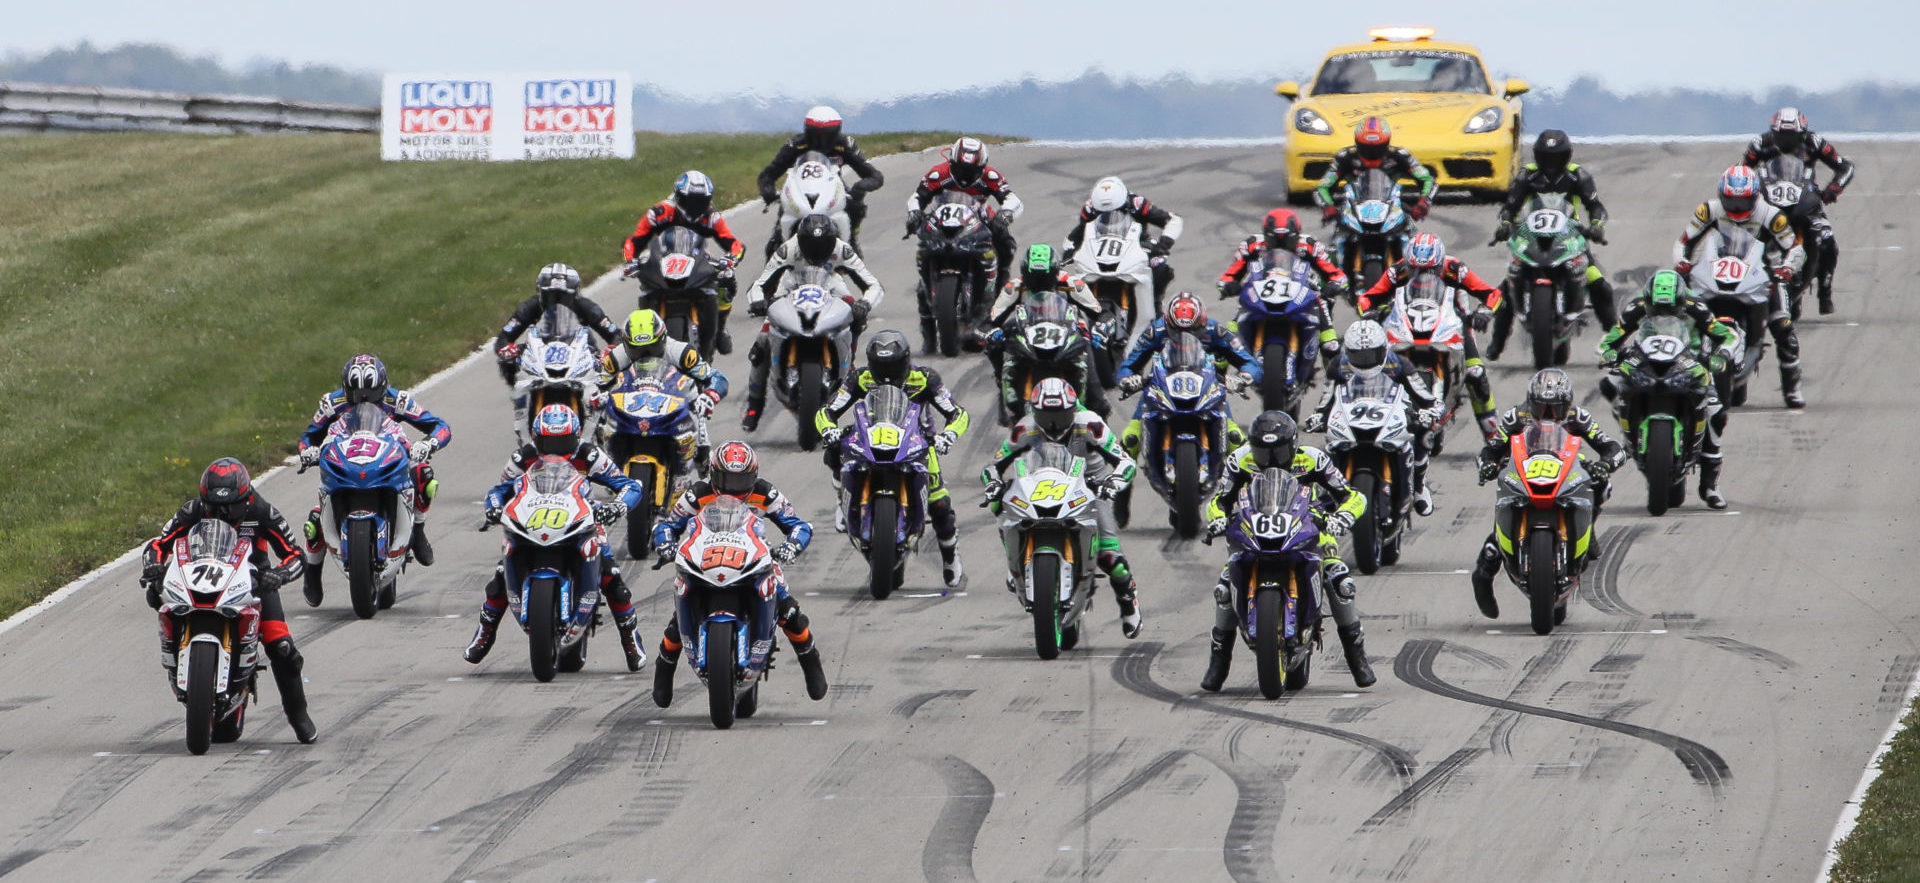 The MotoAmerica Supersport grid at PittRace in 2019. Photo by Brian J. Nelson.